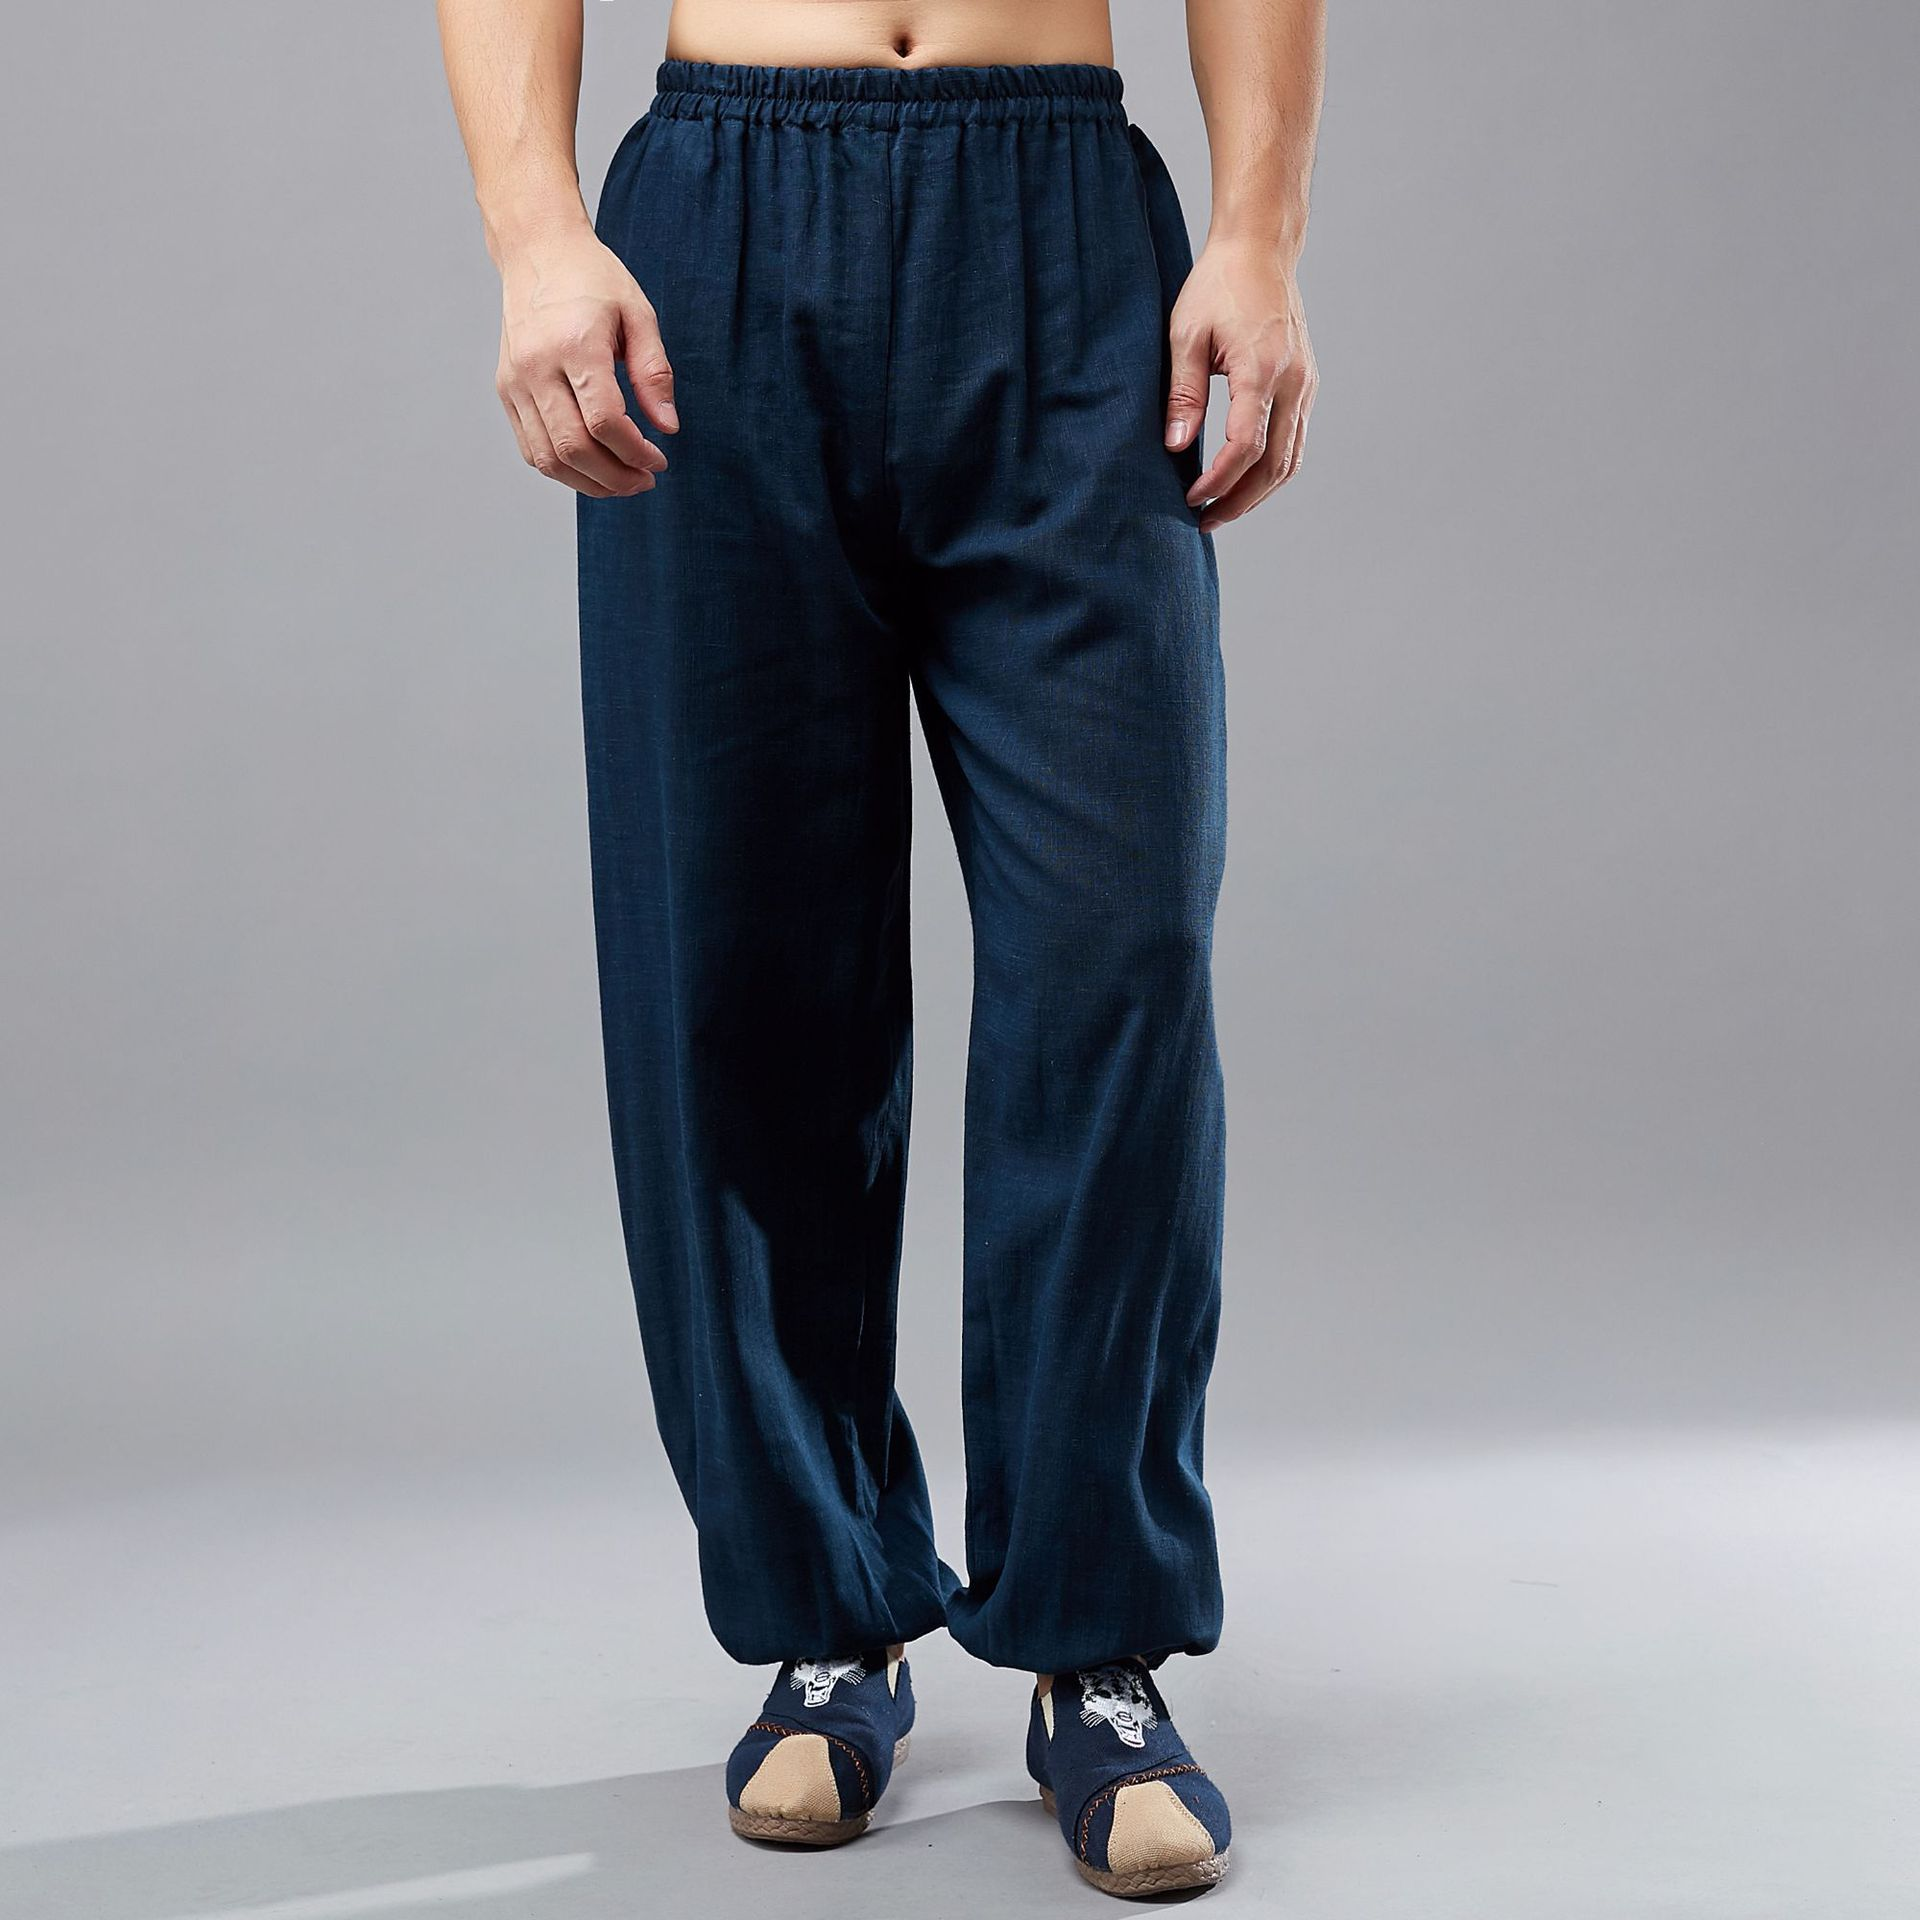 China Kongfu Pants Solid Color Long Trousers Joggers Plus Size Men Cotton Linen Elastic Waist Casual Pants